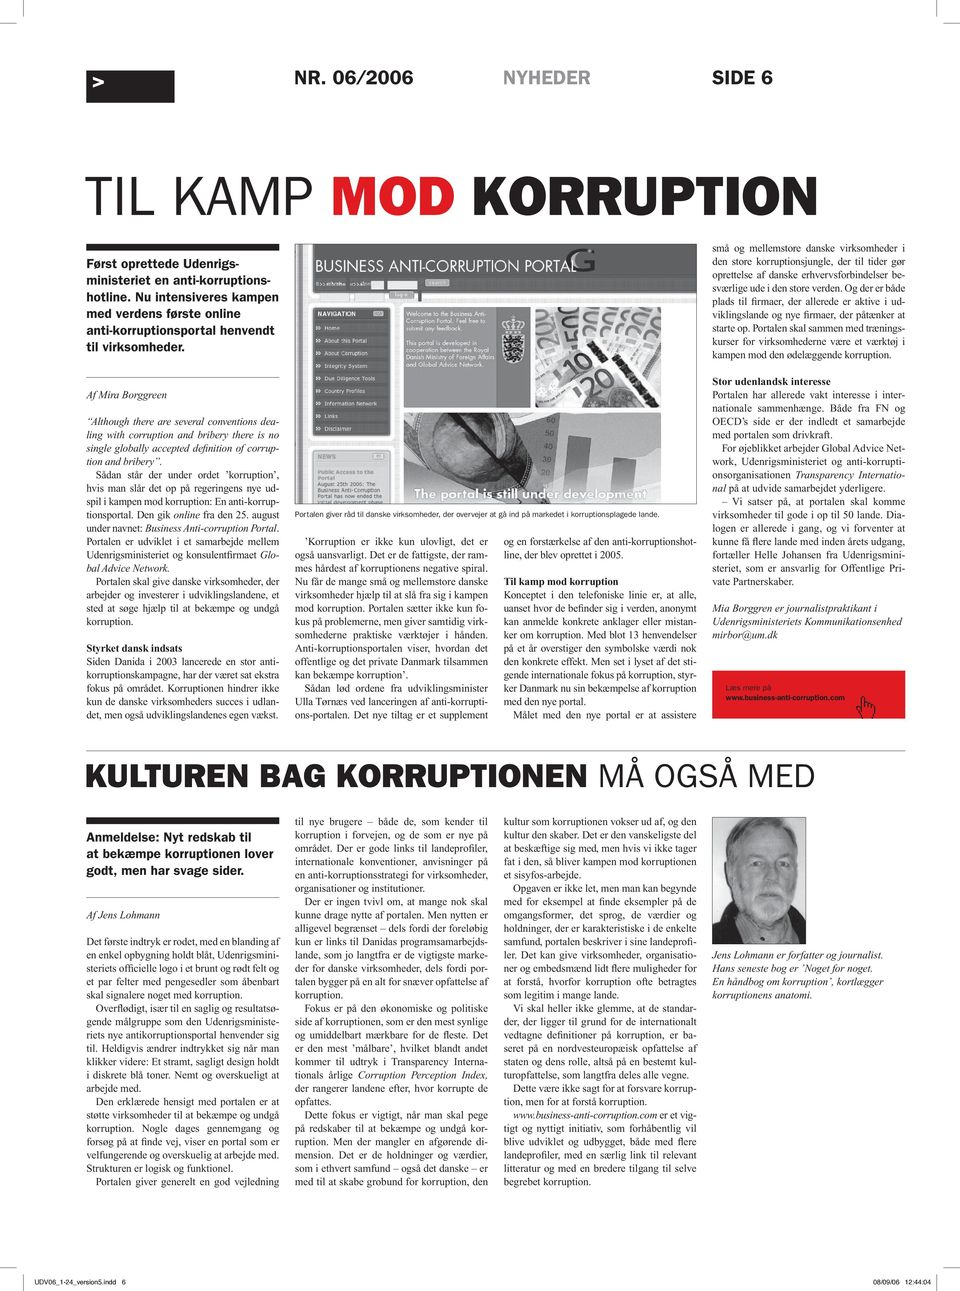 Af Mira Borggreen Although there are several conventions dealing with corruption and bribery there is no single globally accepted definition of corruption and bribery.